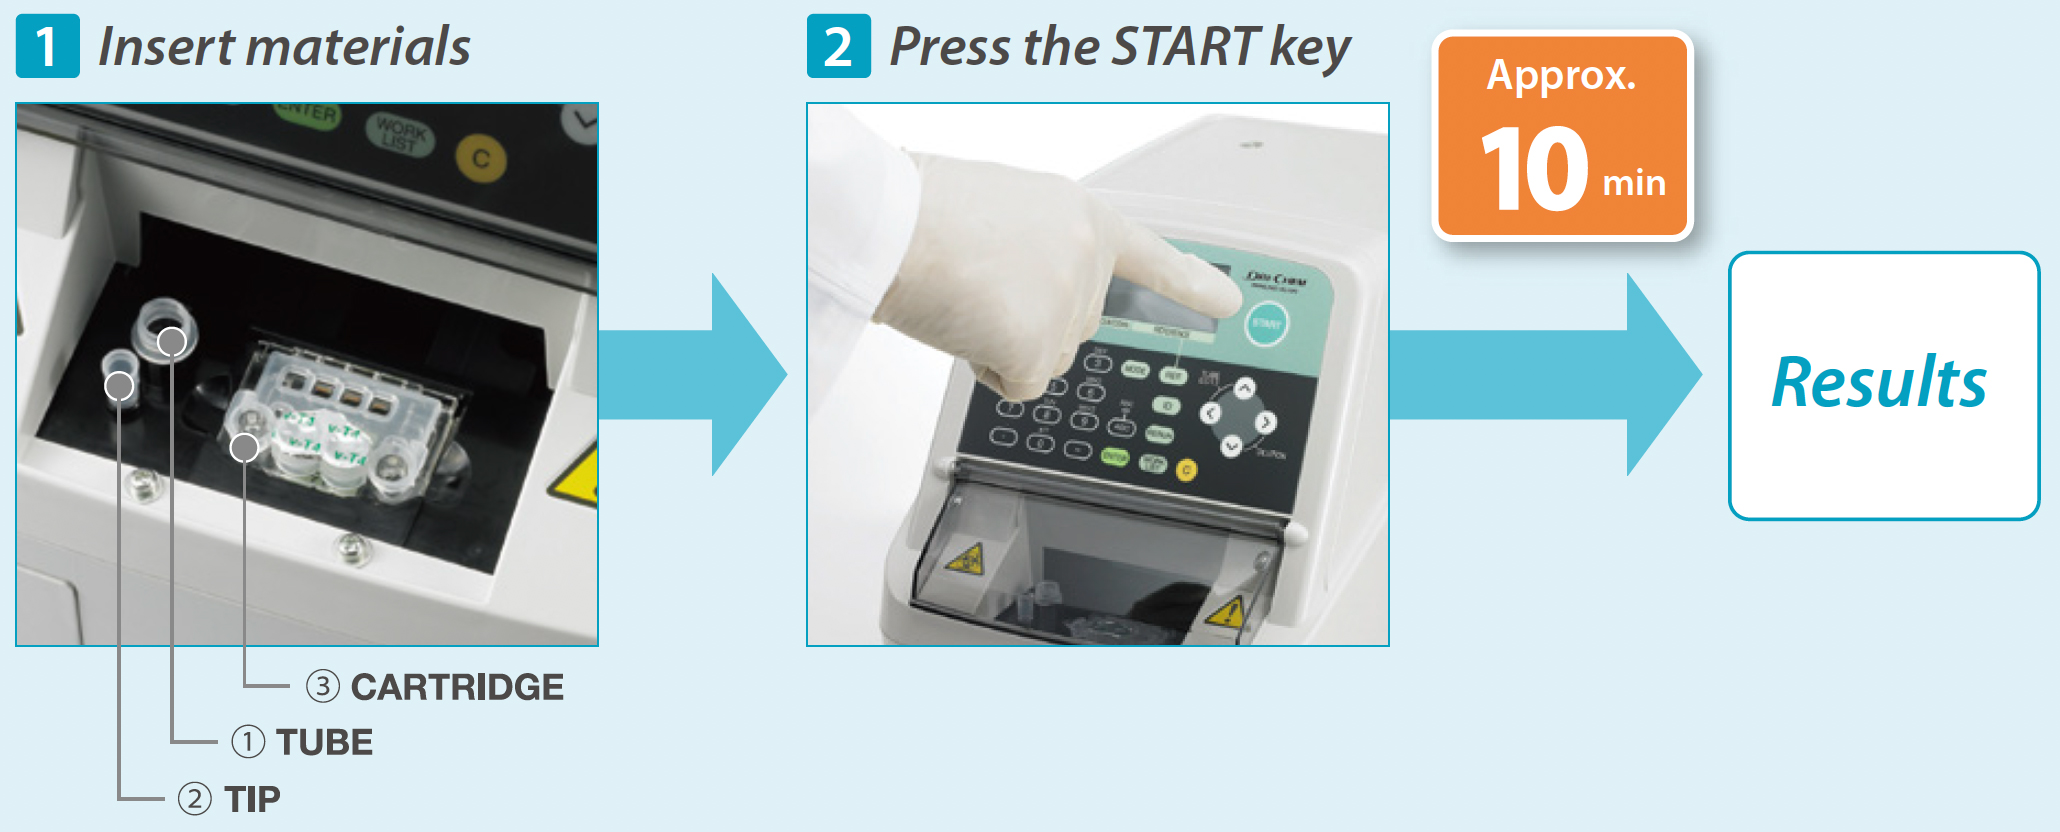 [image] Cartridge, tube and tip materials inserted into DRI-CHEM IMMUNO AU10V, gloved hand pressing START key on control panel of machine, and results take approximately 10 minutes